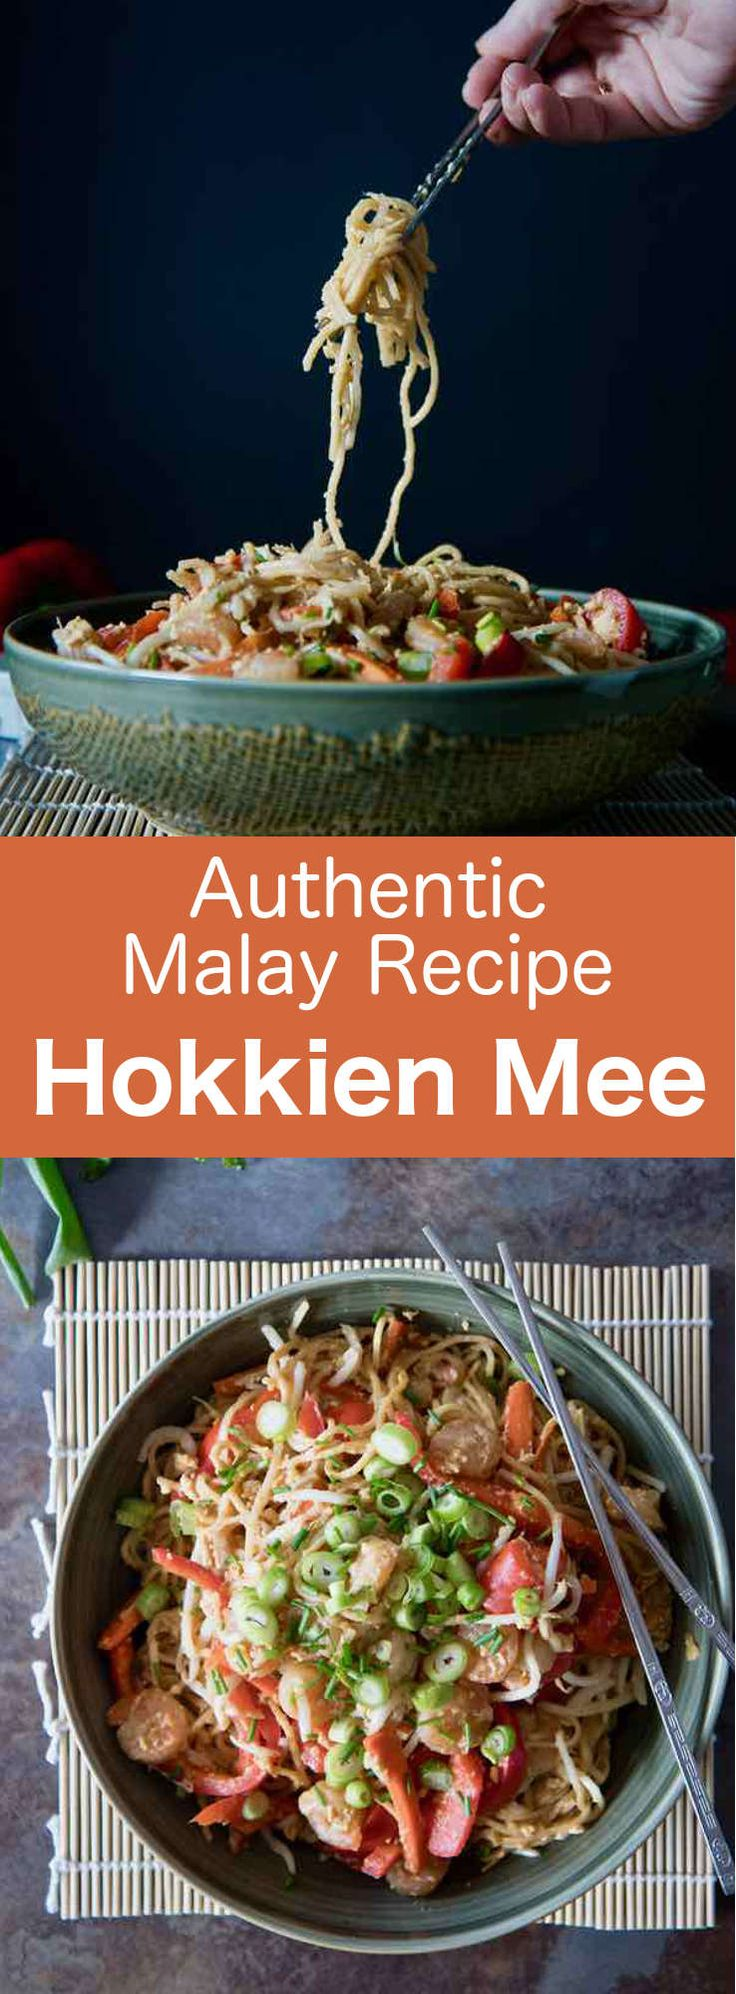 Hokkien mee is a Malaysian dish that consists of egg and rice noodles stir-fried with egg, slices of pork, prawns or squid, and garnished with vegetables. #Malaysia #SouthEastAsia #noodles #196flavors